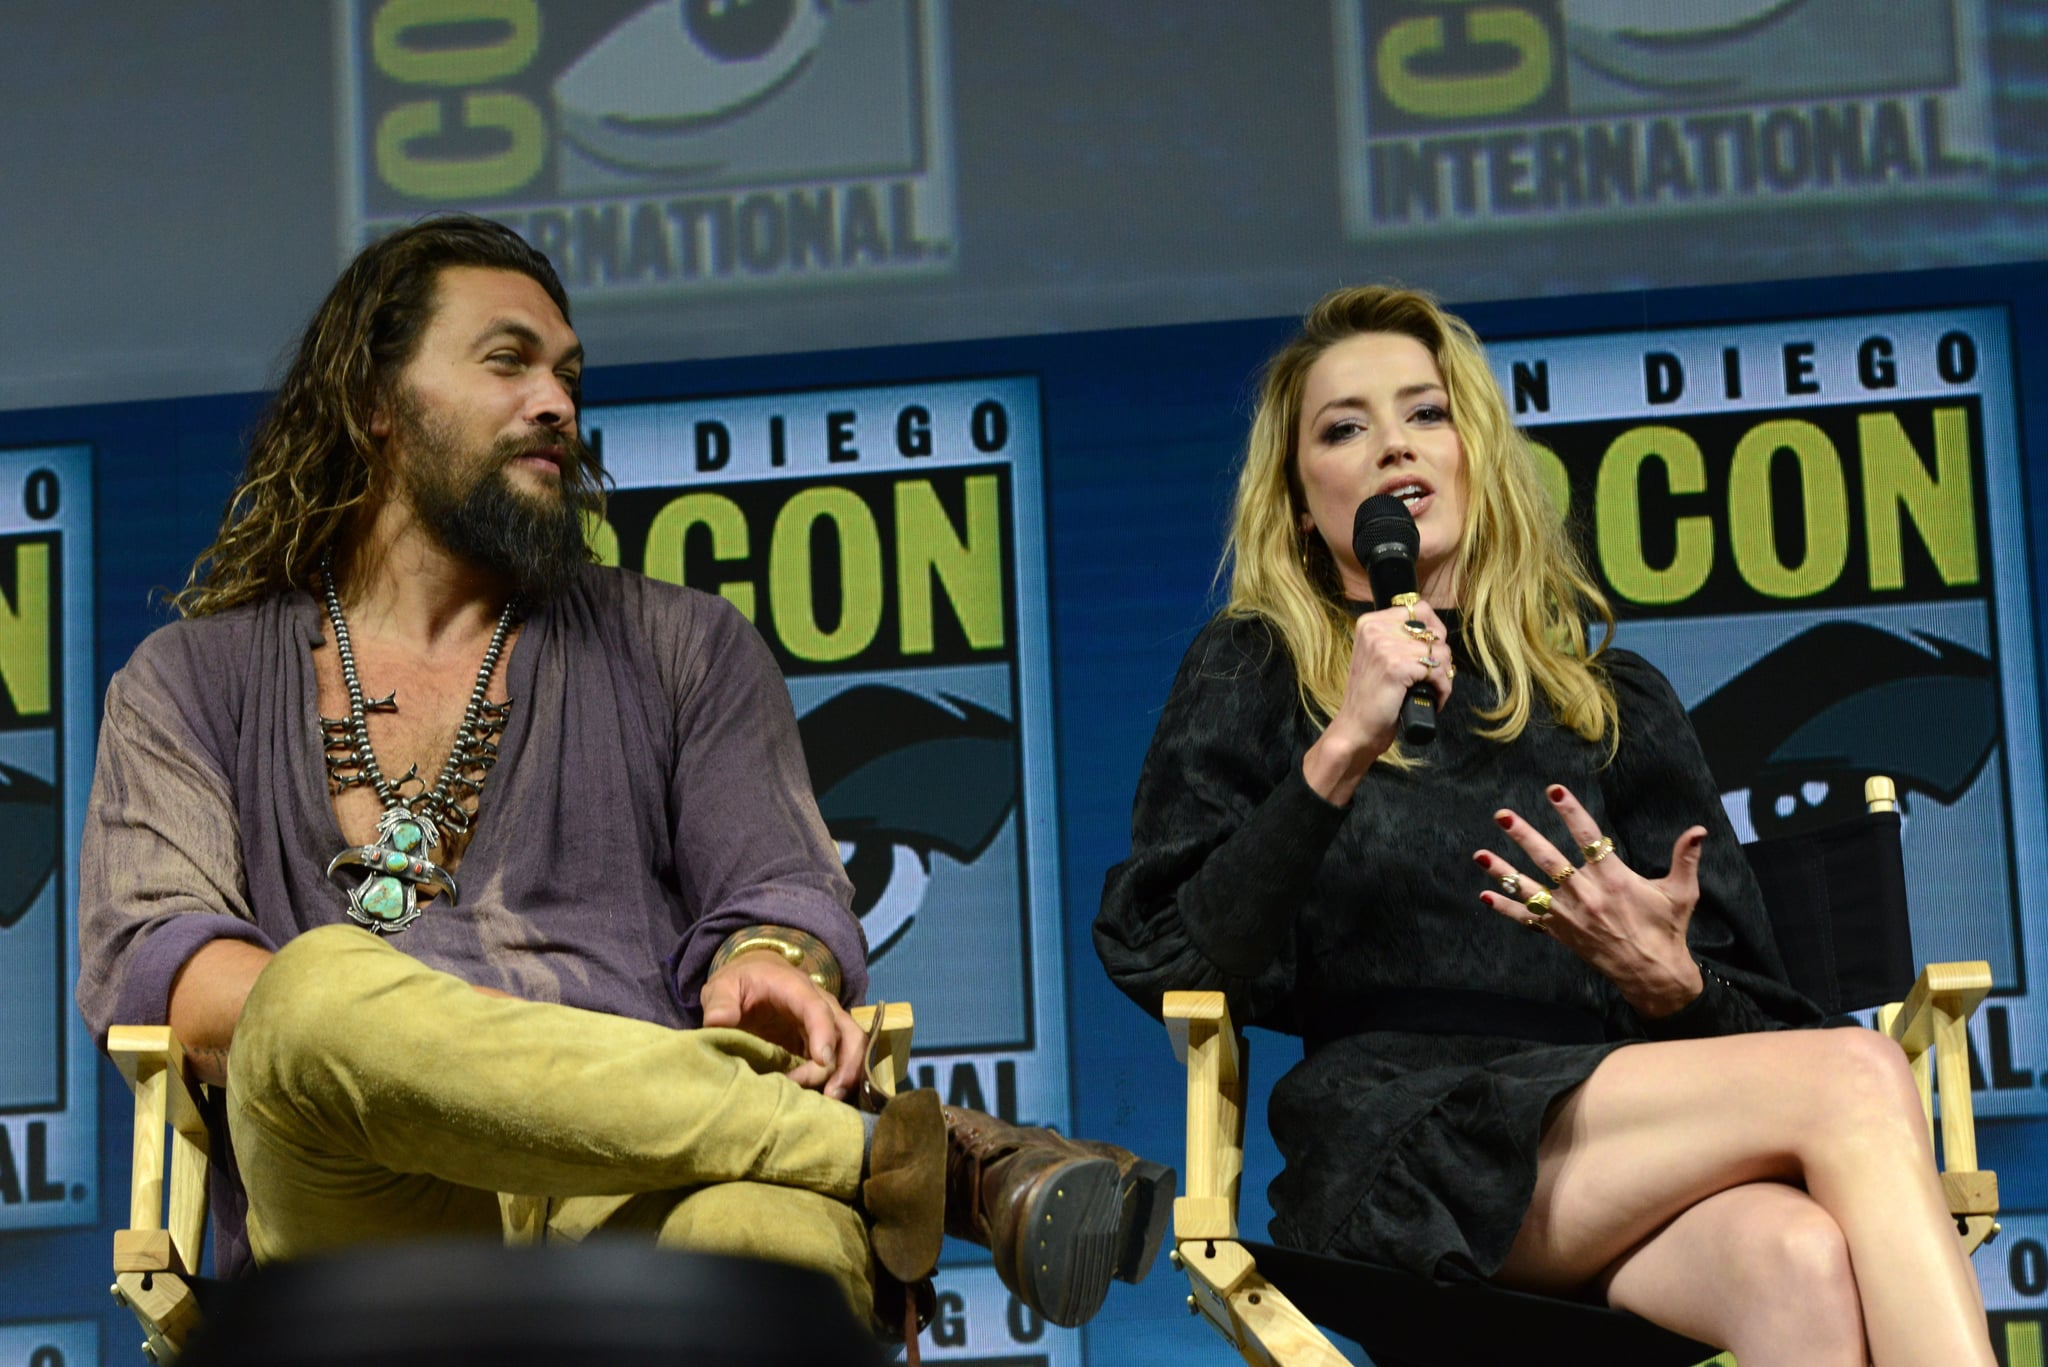 SAN DIEGO, CA - JULY 21:  Jason Momoa and Amber Heard speak onstage at the Warner Bros. 'Aquaman' theatrical panel during Comic-Con International 2018 at San Diego Convention Center on July 21, 2018 in San Diego, California.  (Photo by Albert L. Ortega/Getty Images)